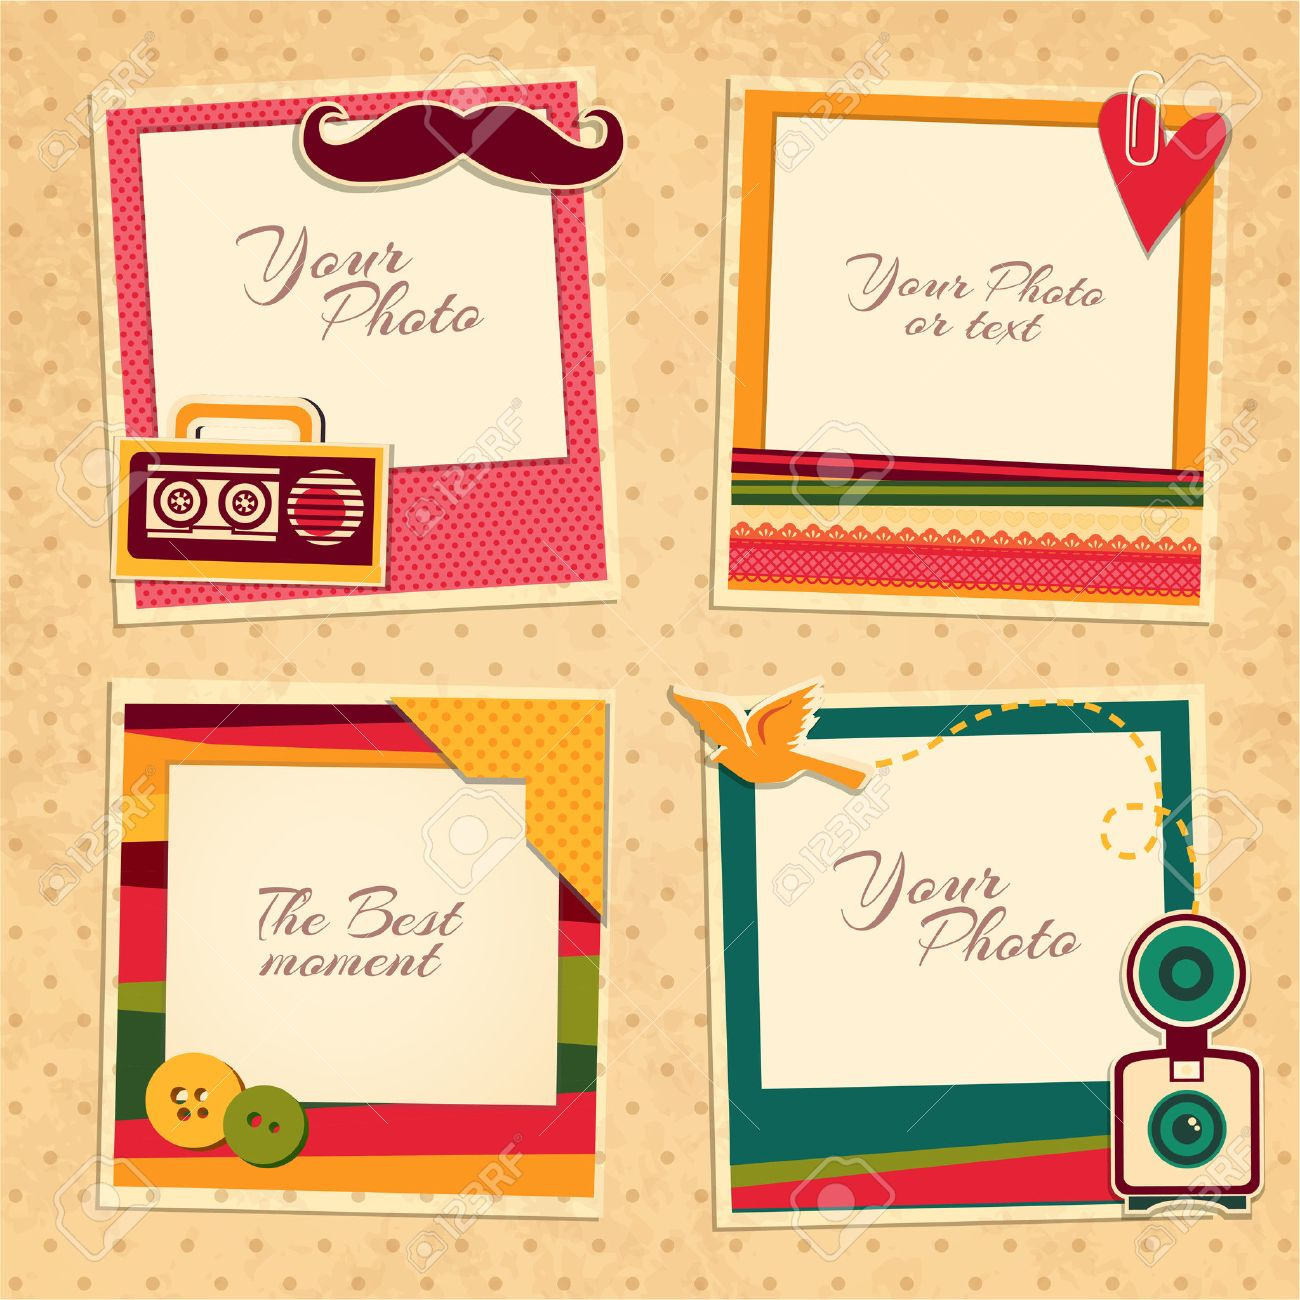 Design photo frames on nice background. Decorative template for baby, family or memories. Scrapbook concept, vector illustration. Birthday - 49174089